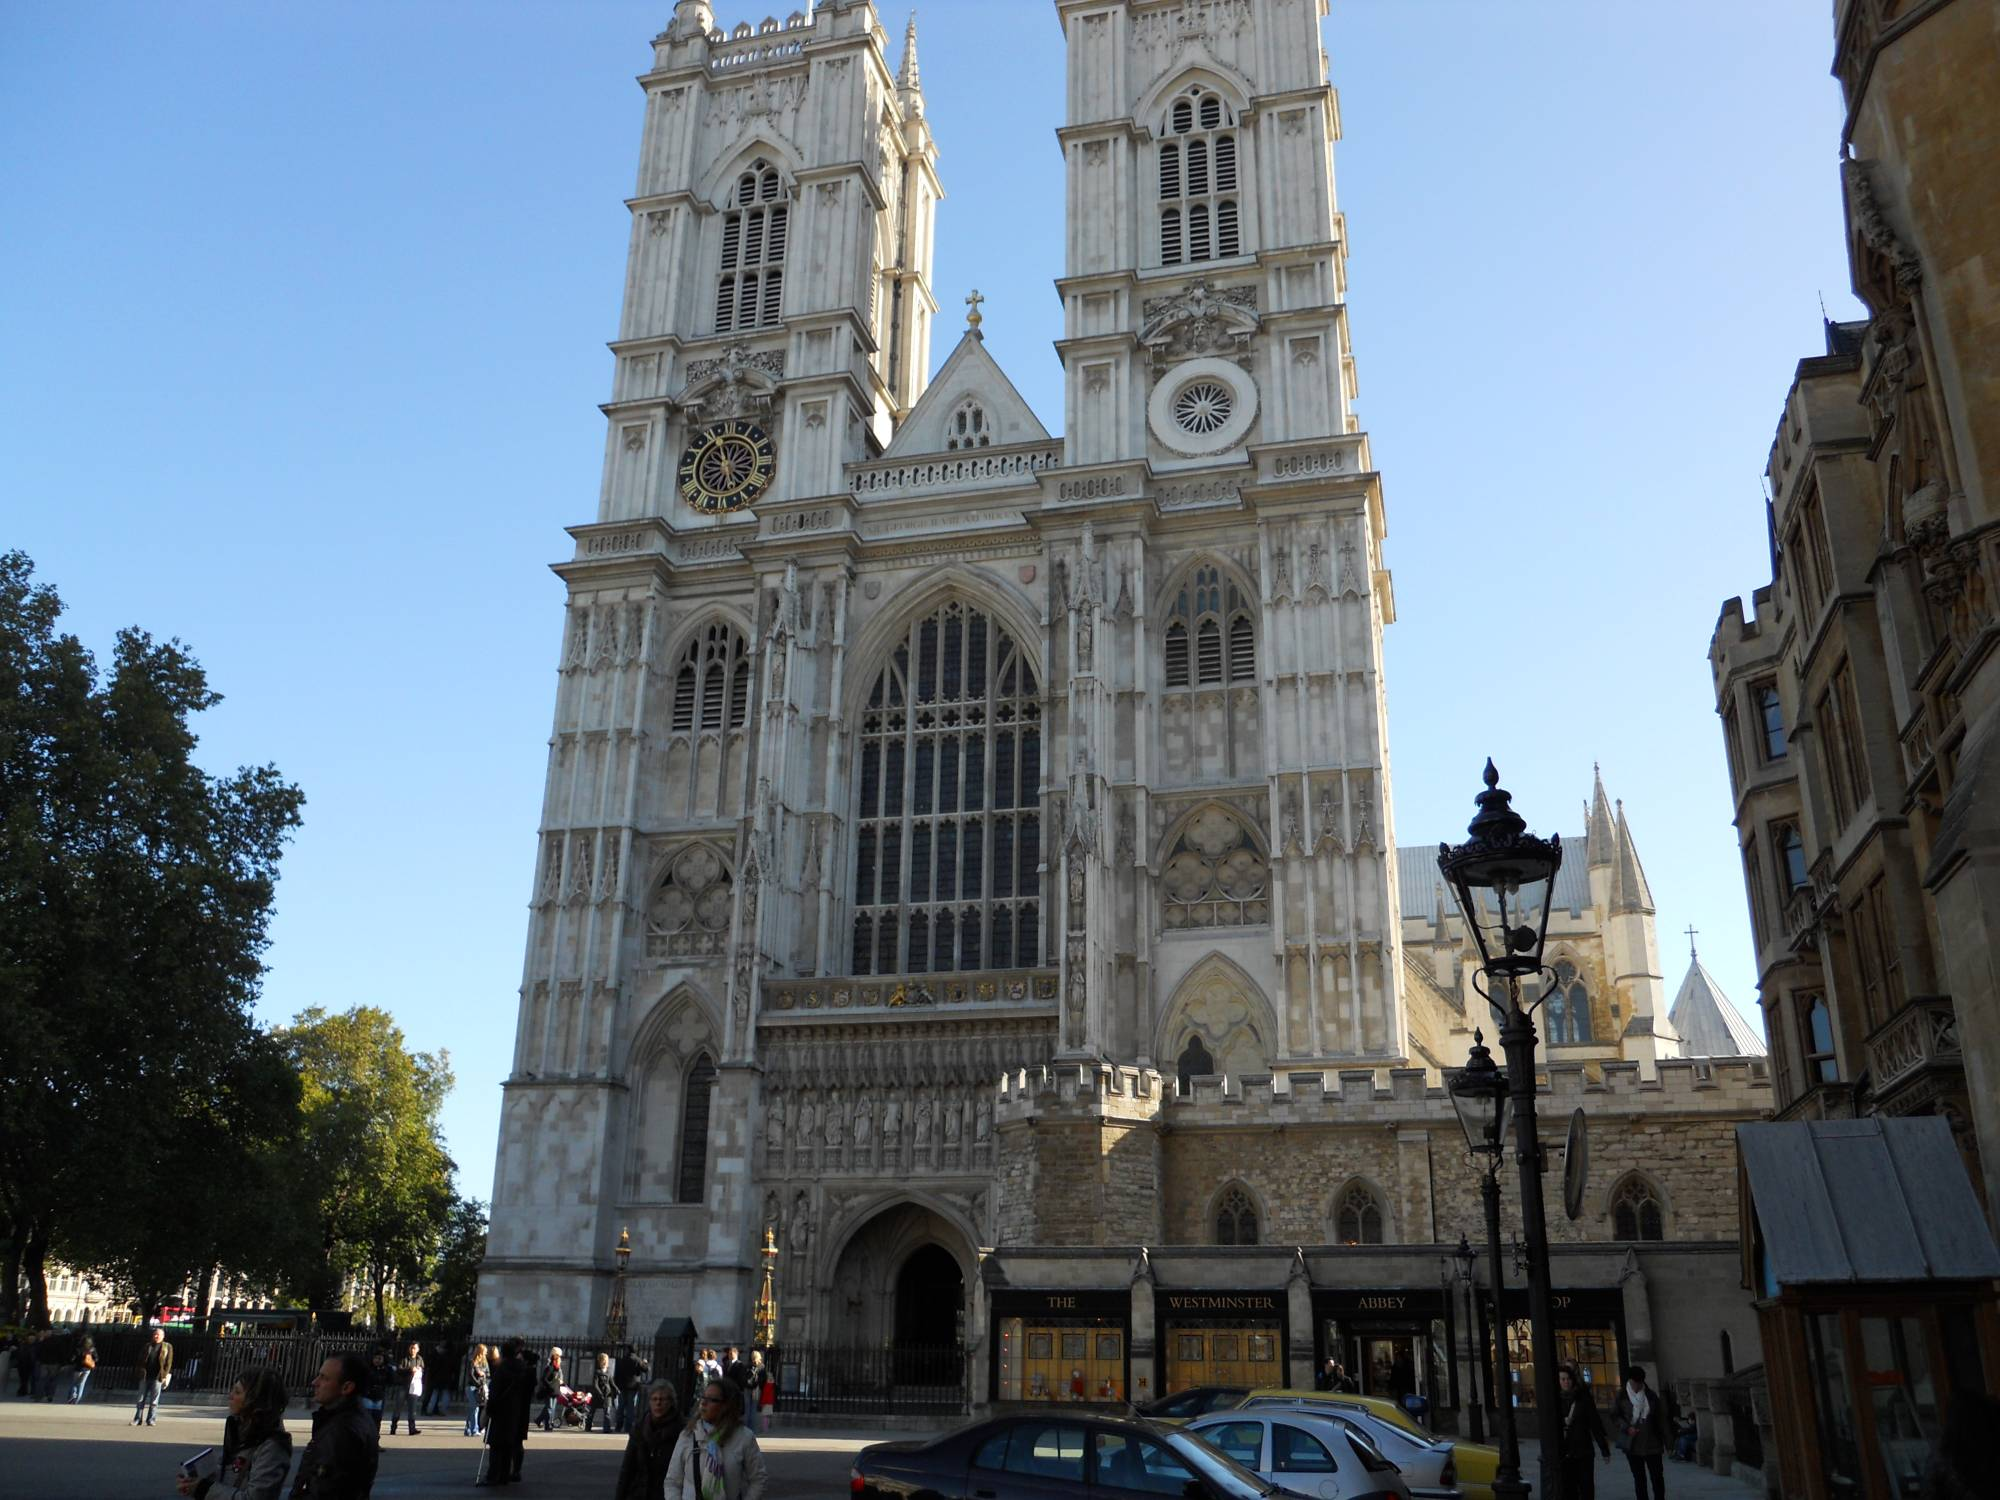 westminster_abbey photo